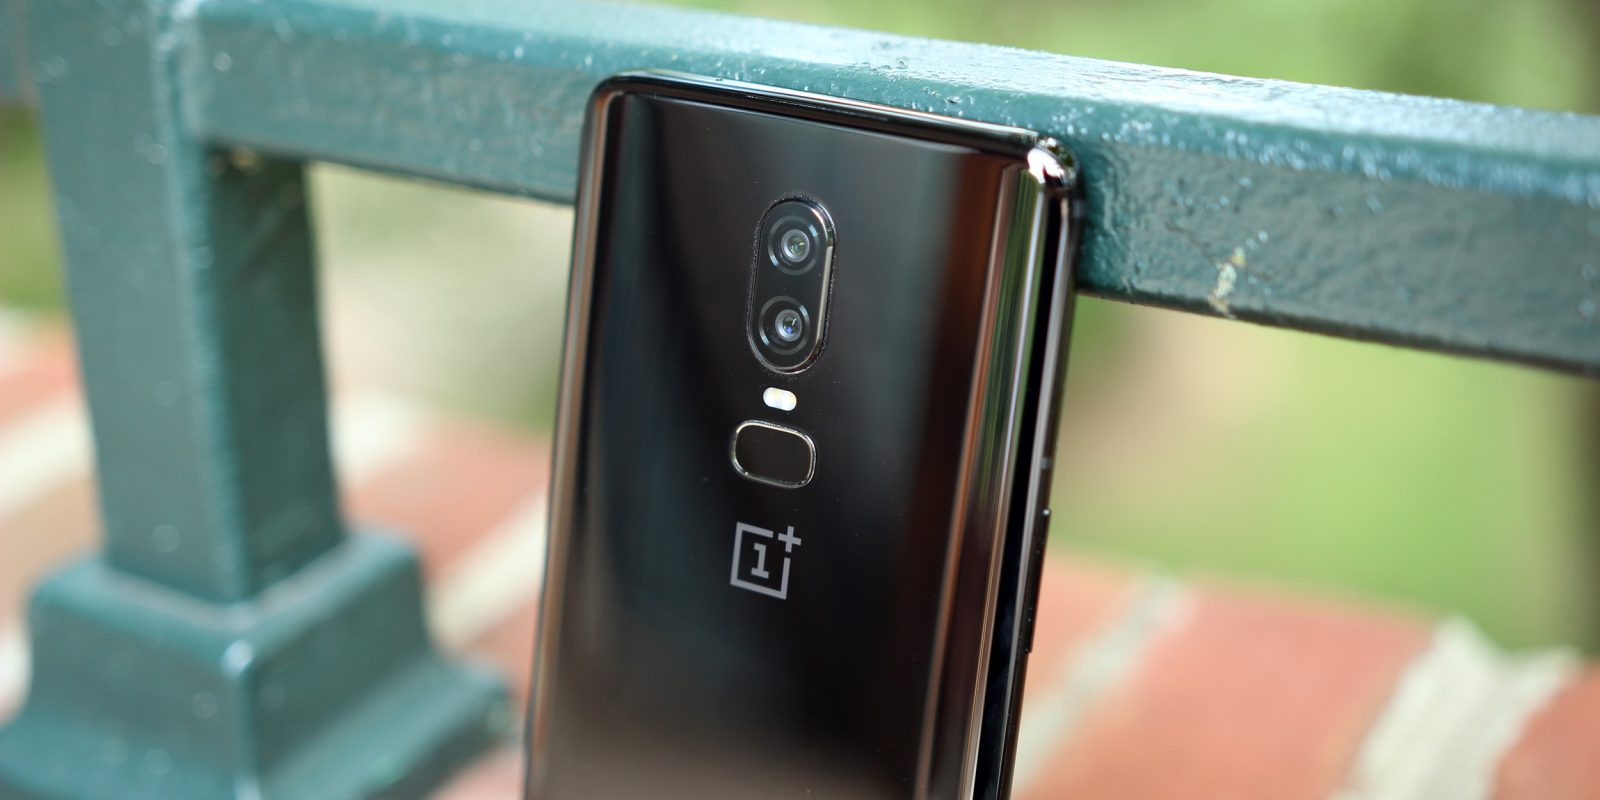 OnePlus 6 adds selfie Portrait mode along with OxygenOS 5.1.6 update